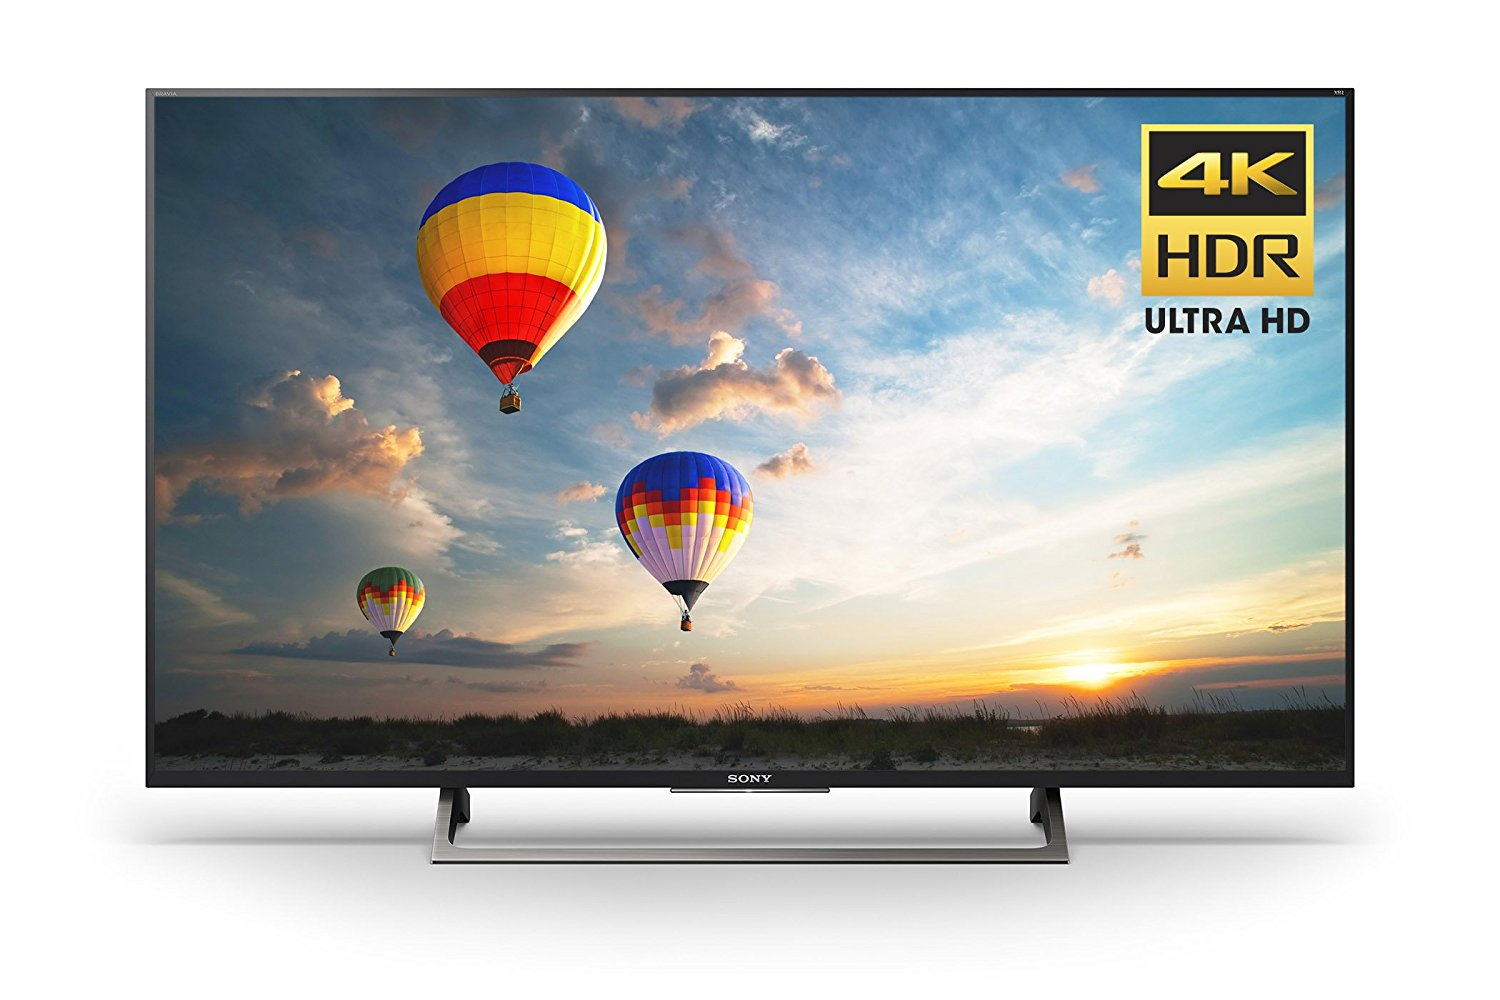 Sony 4K Ultra smart LED TVs